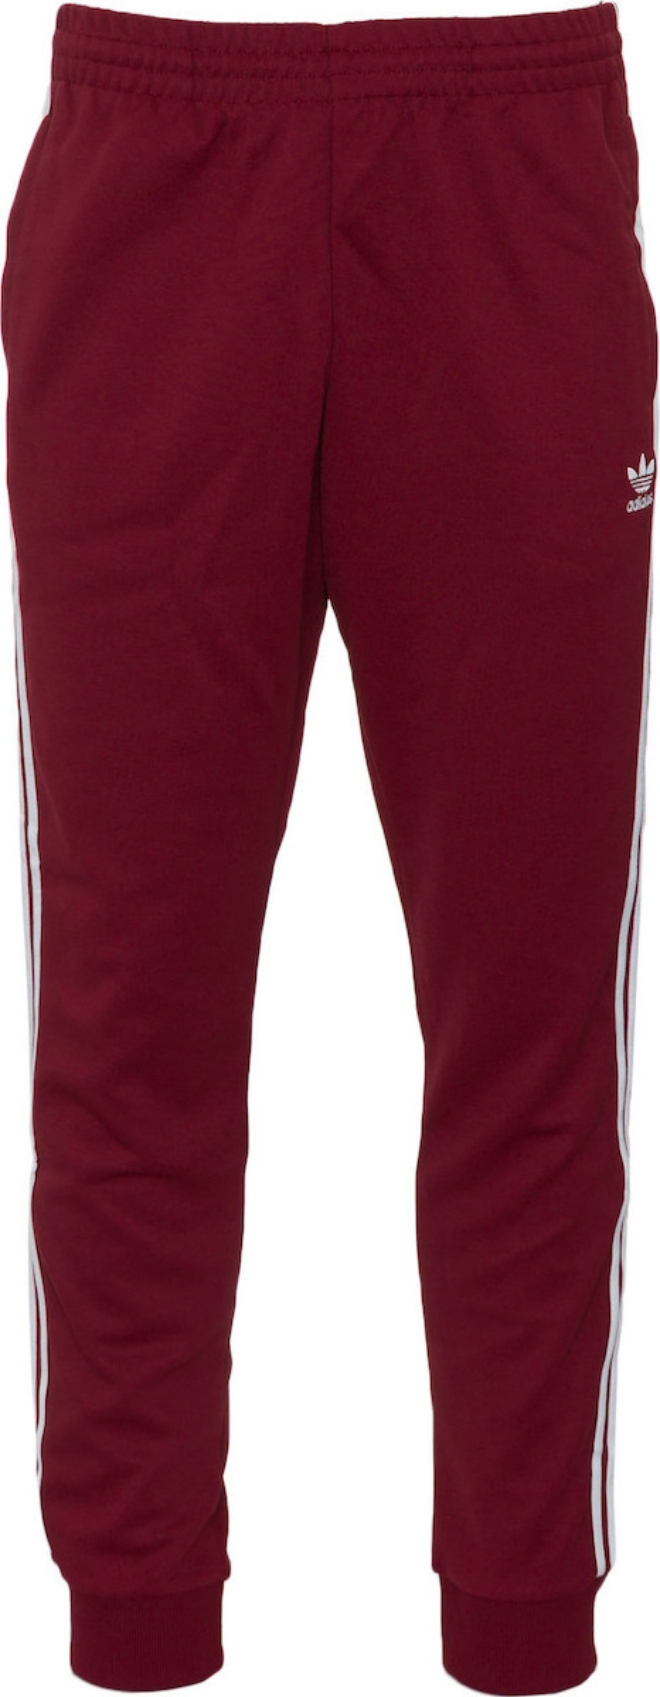 Adidas Originals Superstar Track Pants DU1348